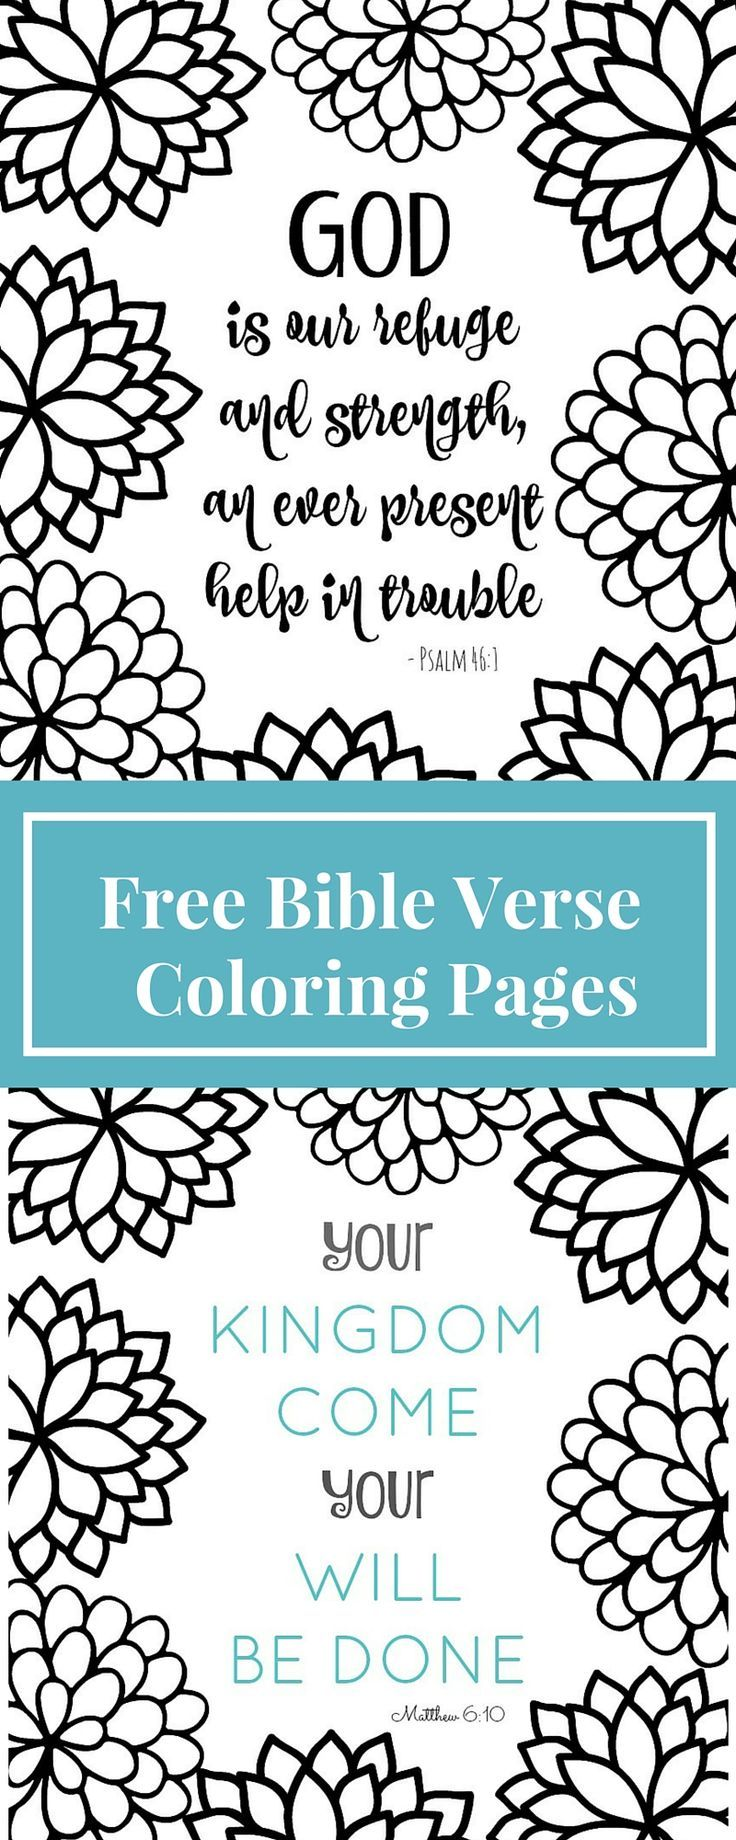 Free coloring pages for relaxation - 337 Best Images About Free Printable Coloring Pages On Pinterest Princess Coloring Pages Coloring And Mandala Coloring Pages